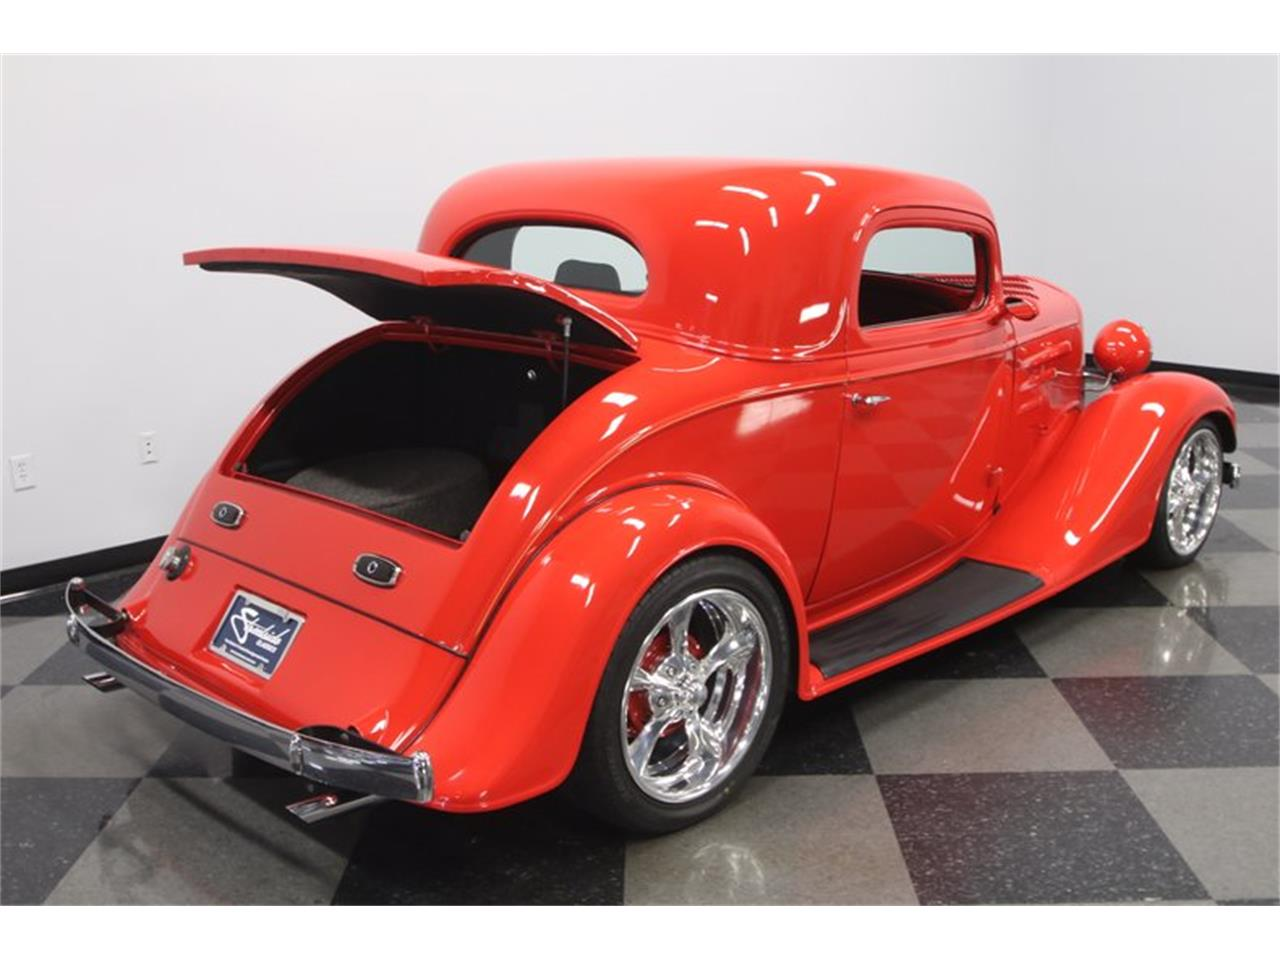 1934 Chevrolet 3-Window Coupe for sale in Lutz, FL – photo 39